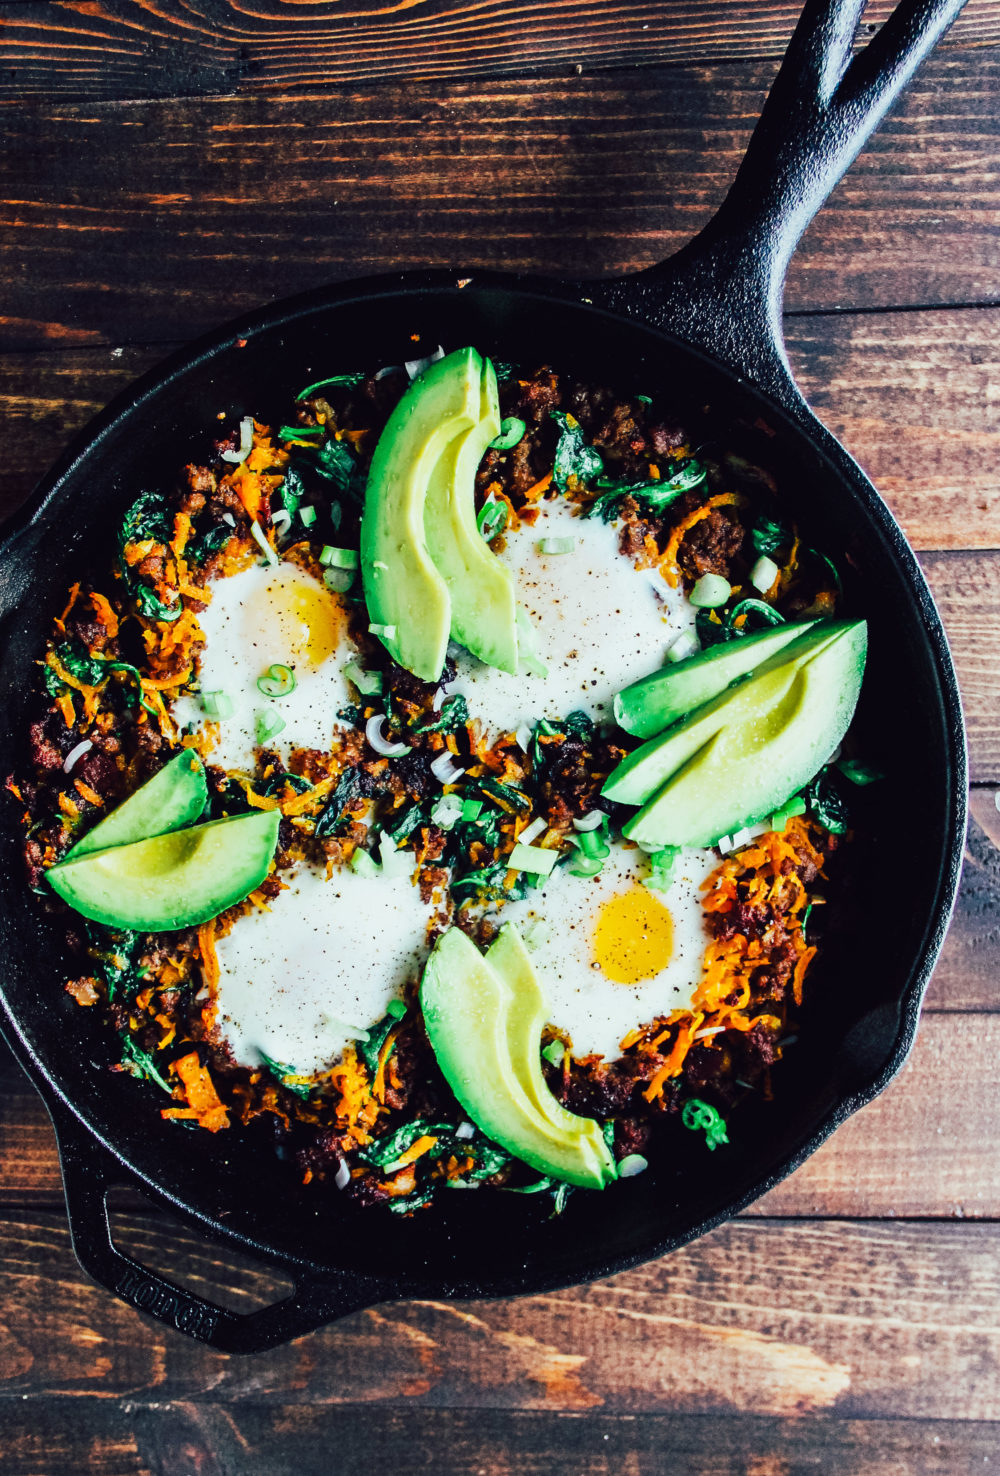 Paleo Breakfast Skillet, a great #paleo, #healthy, #glutenfree, #grainfree, #dairyfree, #whole30 #recipe